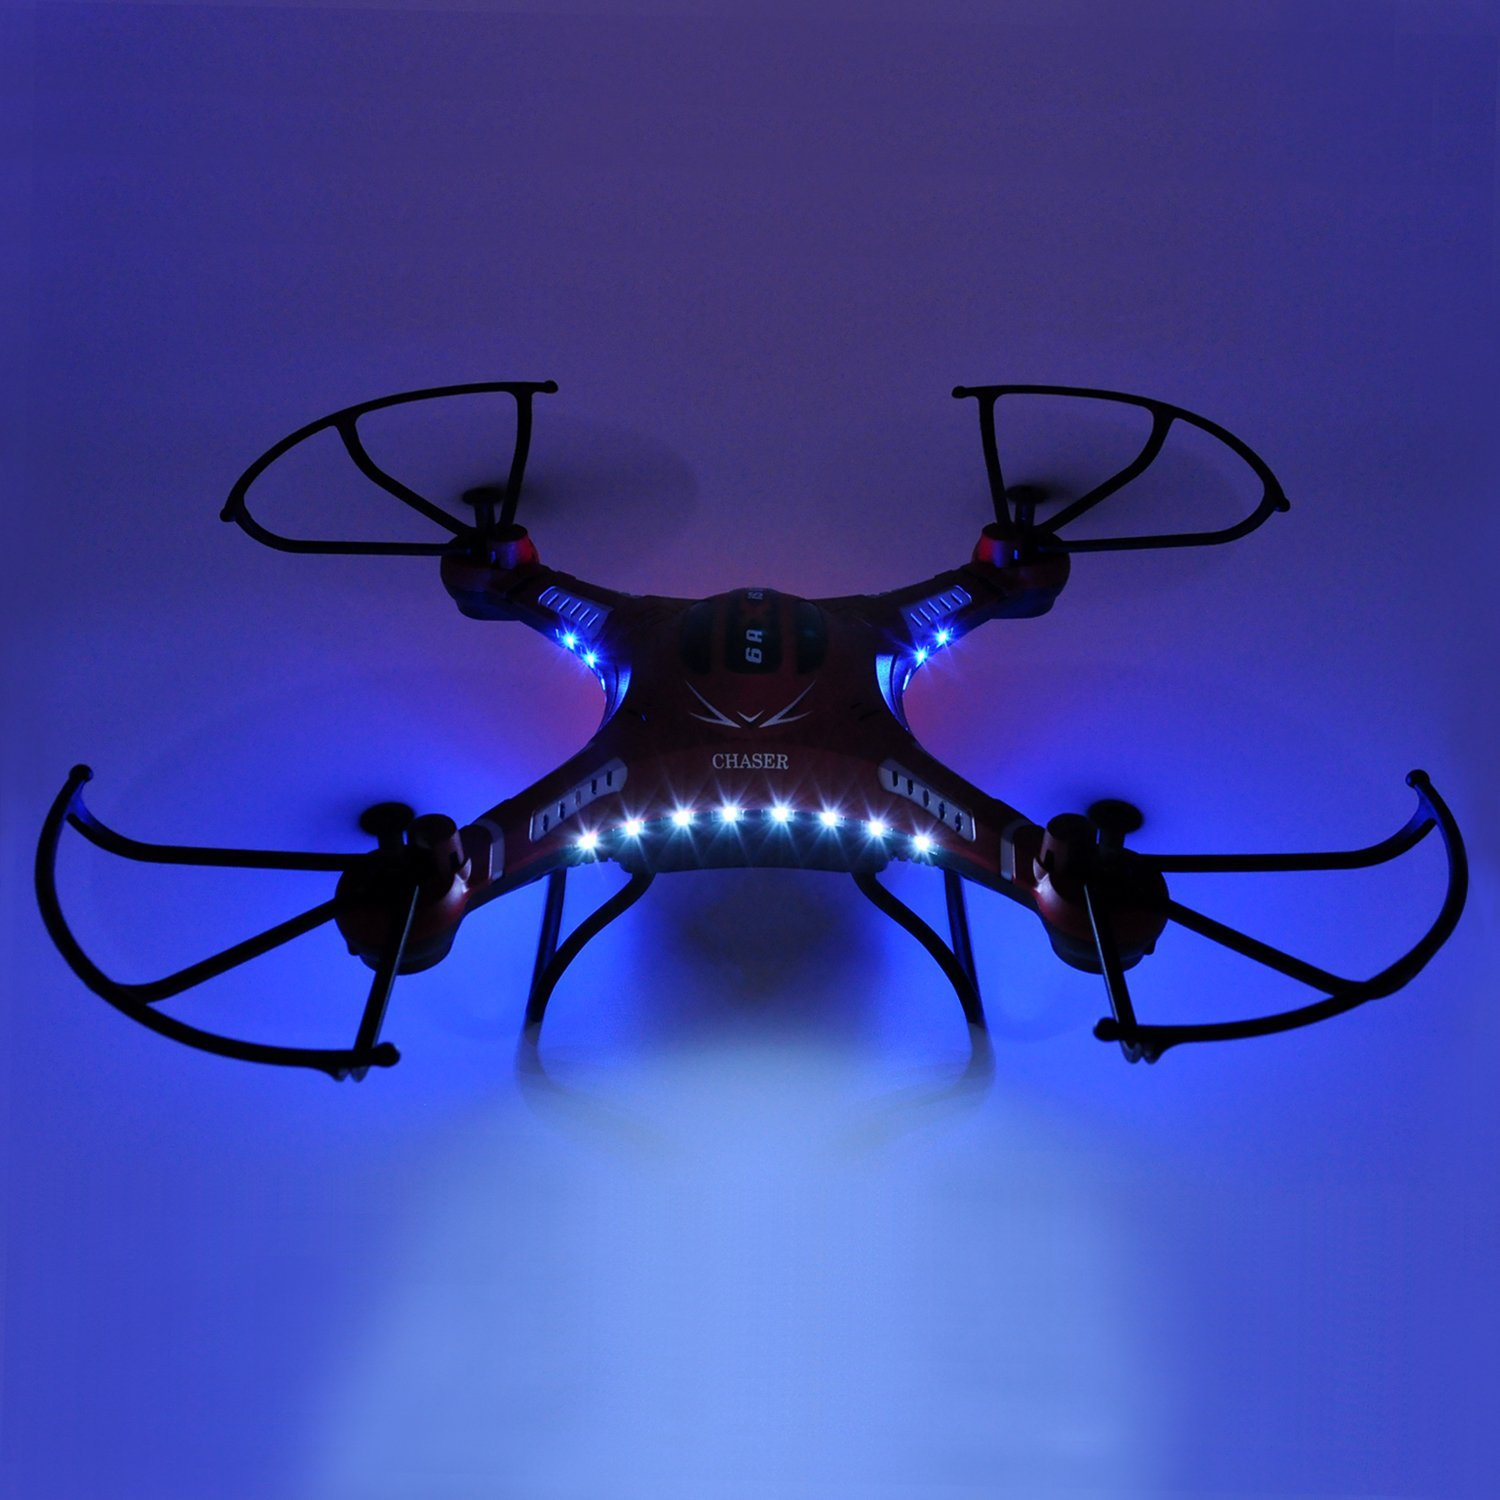 The Best Cheap Drones - Potensic F183W